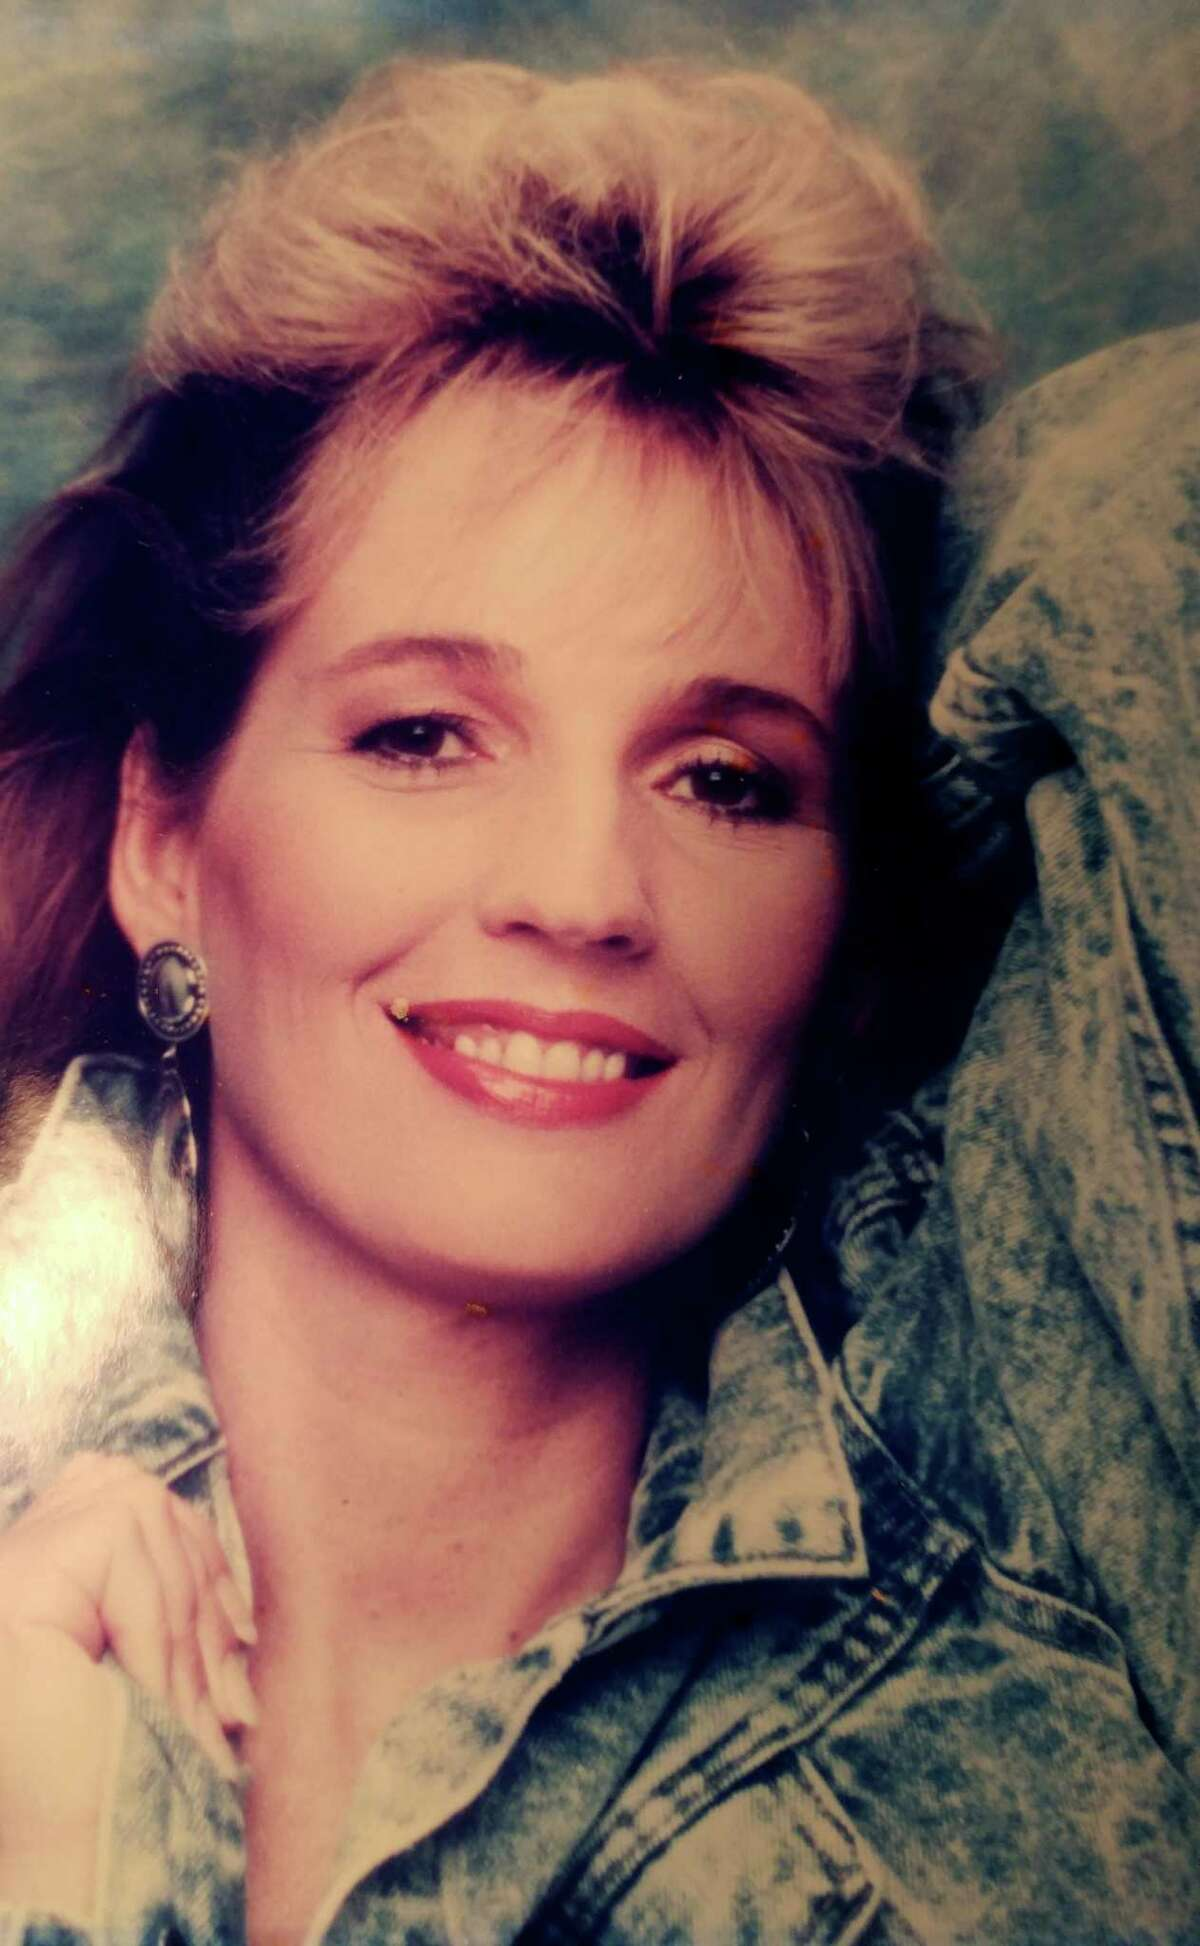 Kathy Page was found dead in 1991.